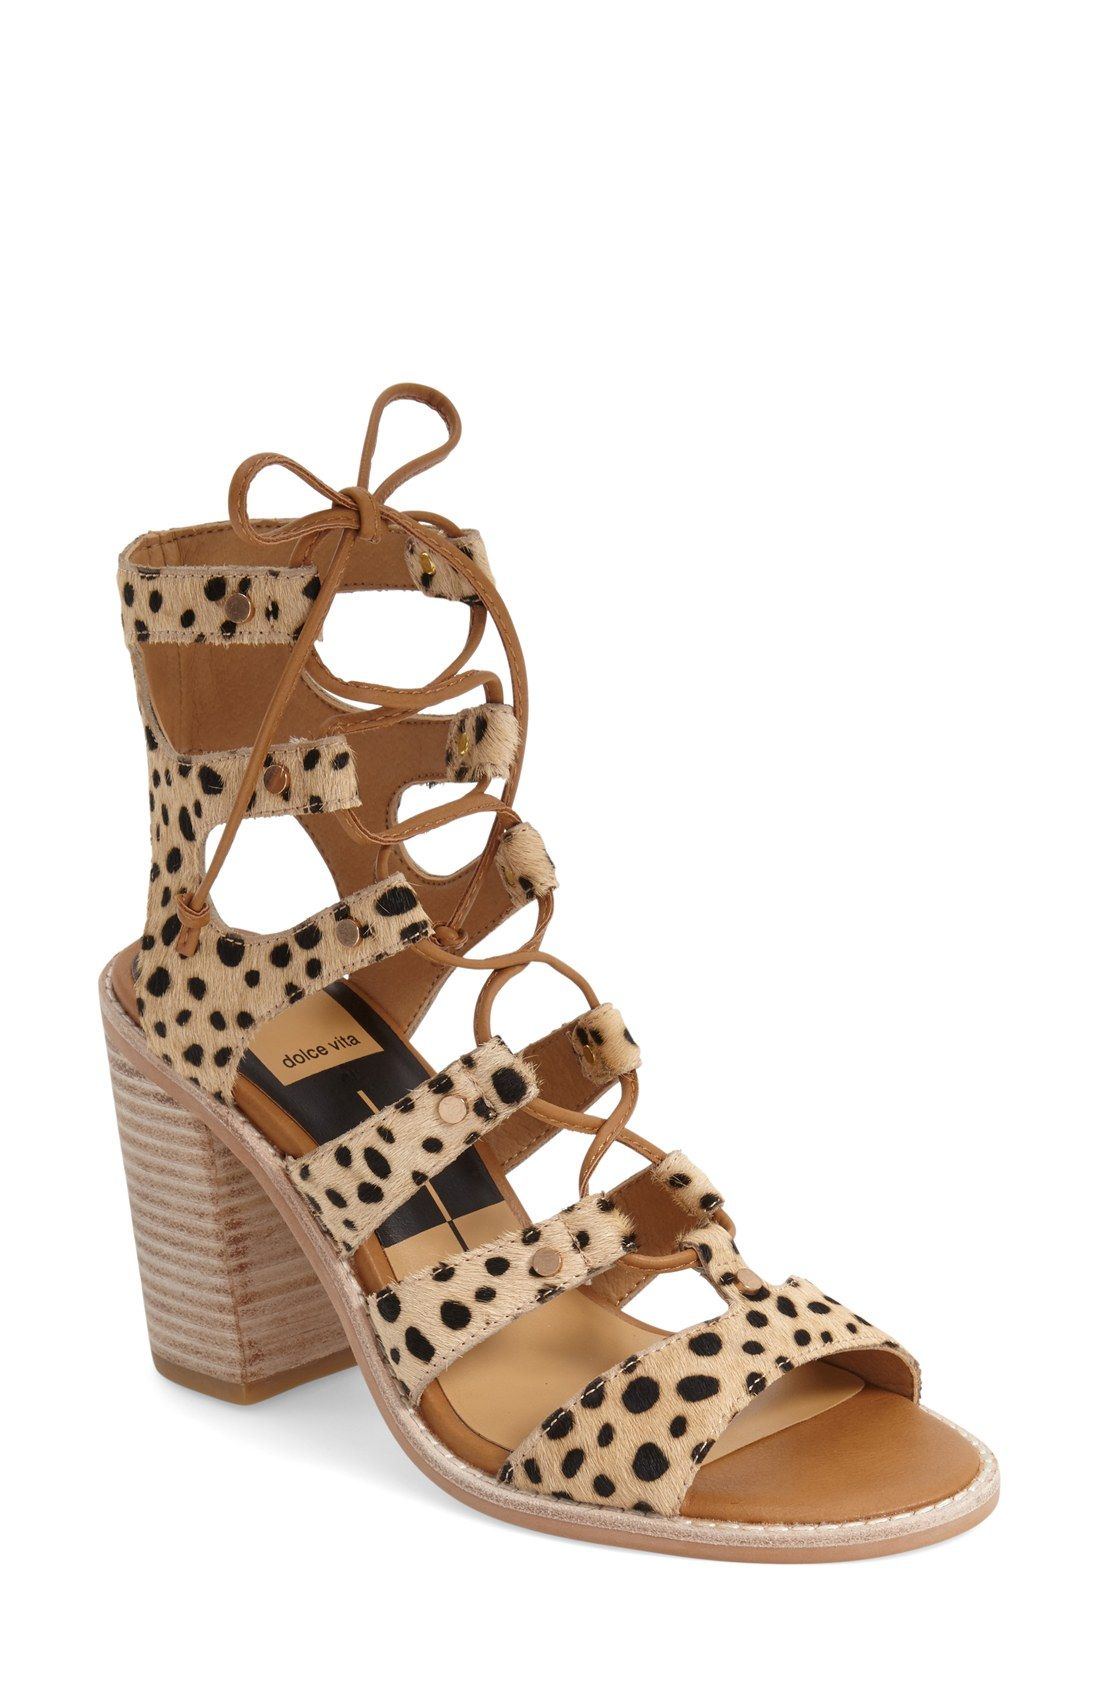 Eye-catching cutouts, leopard print and laces make these sandals ...